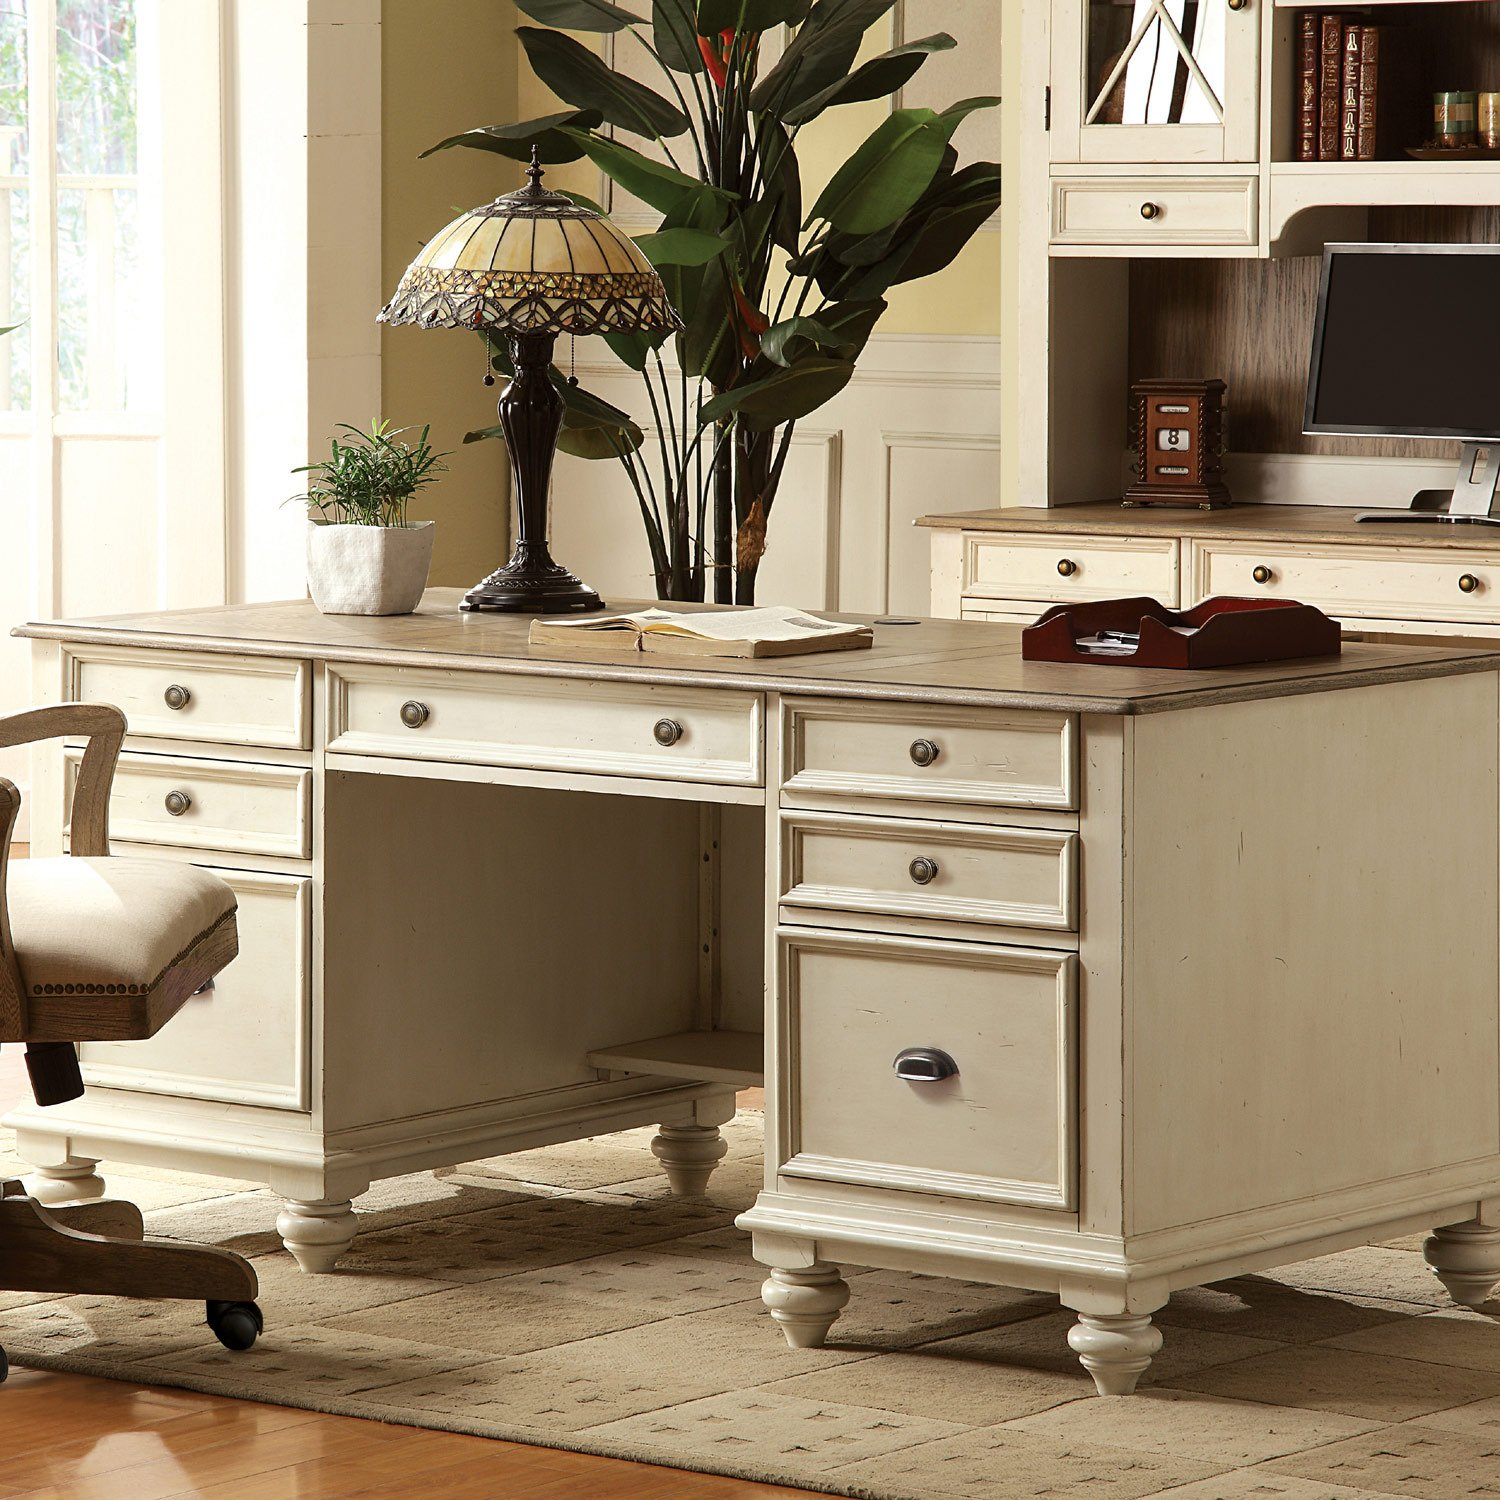 Amazon.com : Coventry Two Tone Executive Desk w Drawers (Weathered ...